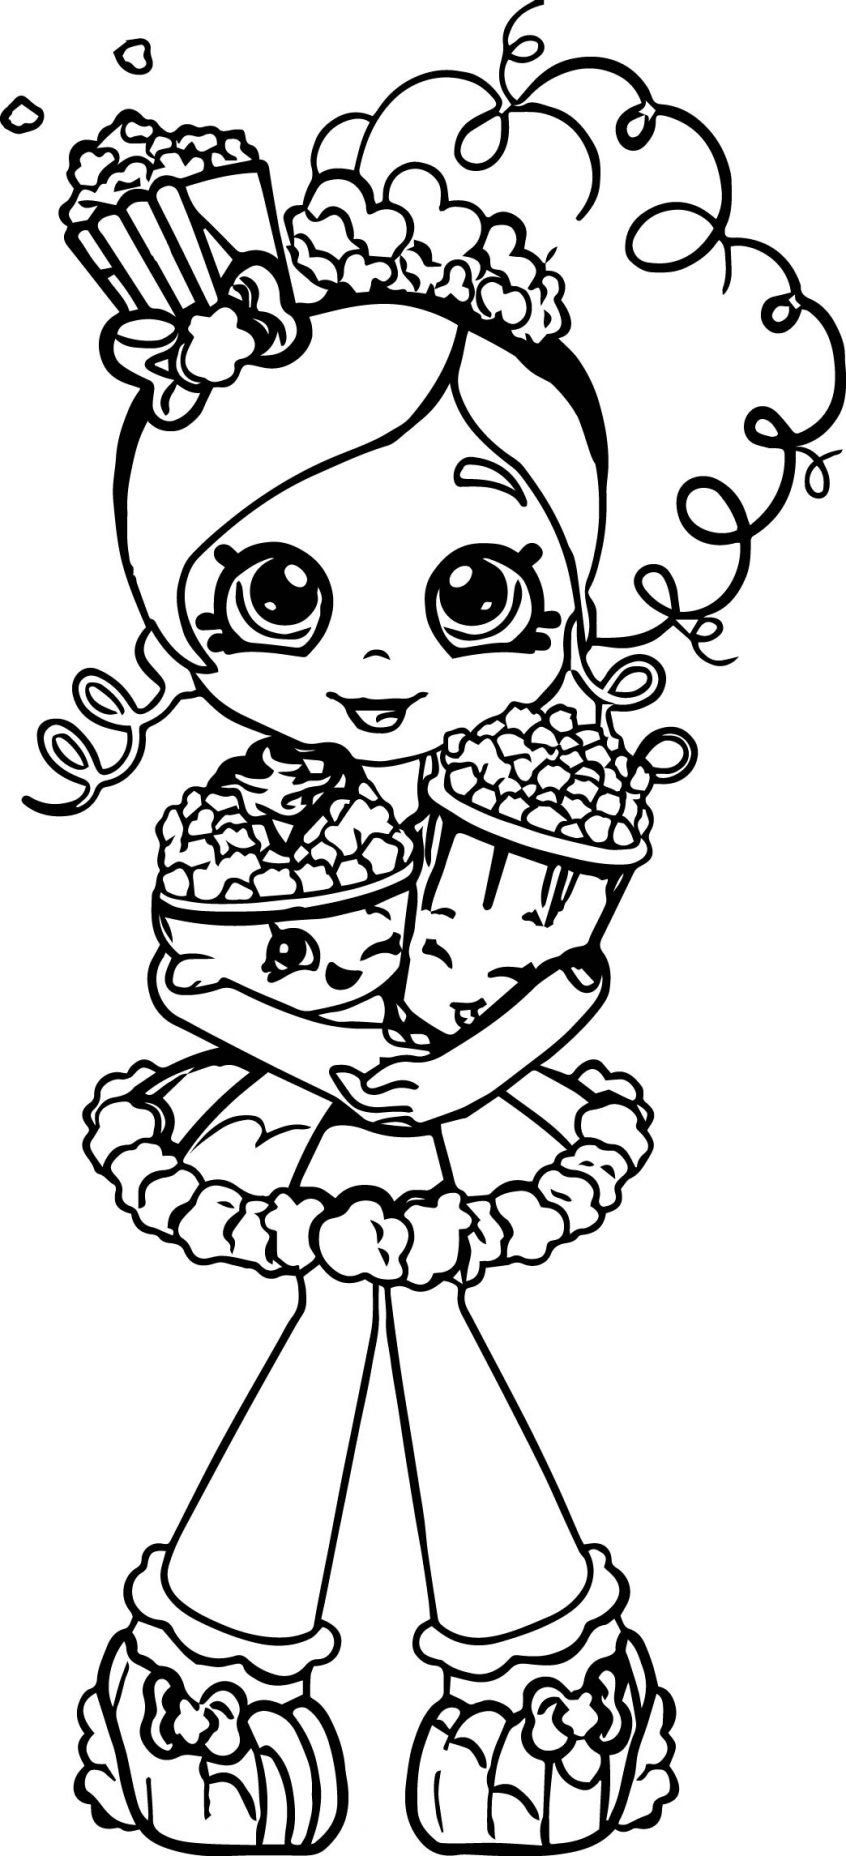 24 Best Picture Of Free Shopkins Coloring Pages Davemelillo Com Shopkins Coloring Pages Free Printable Shopkin Coloring Pages Shopkins Colouring Pages